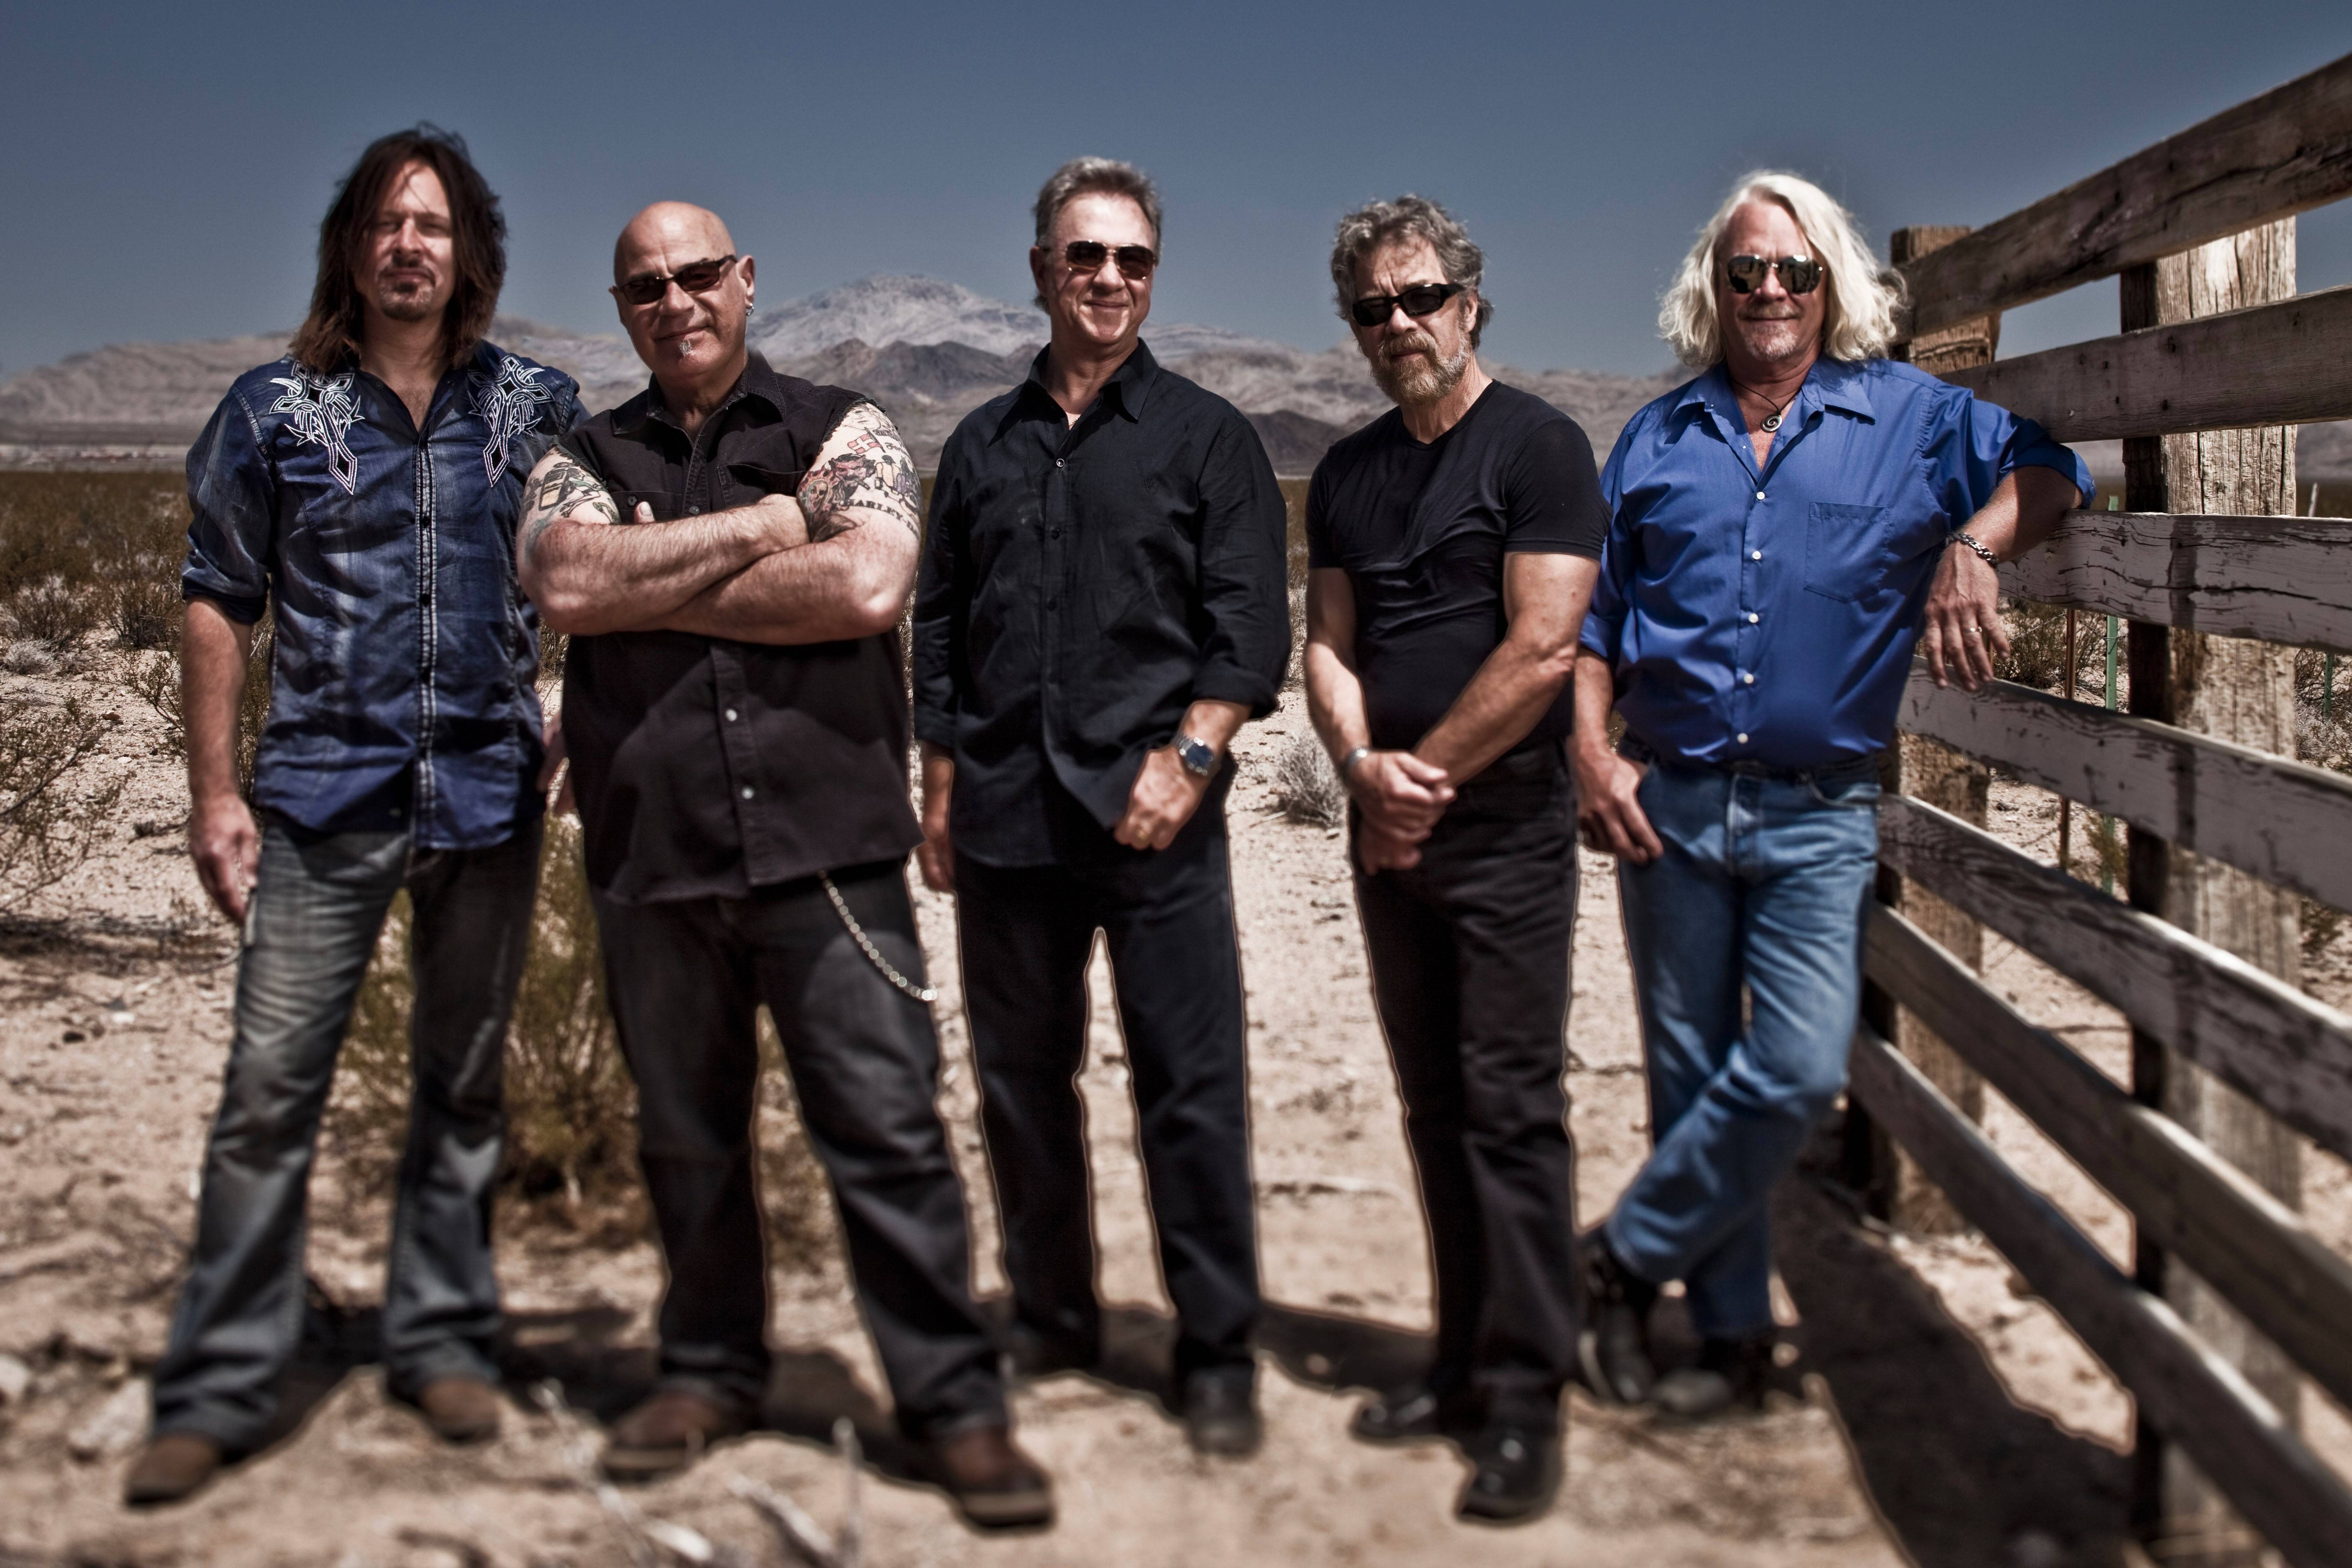 Creedence Clearwater Revisited will play at Elgin's Festival Park on Friday, July 4.